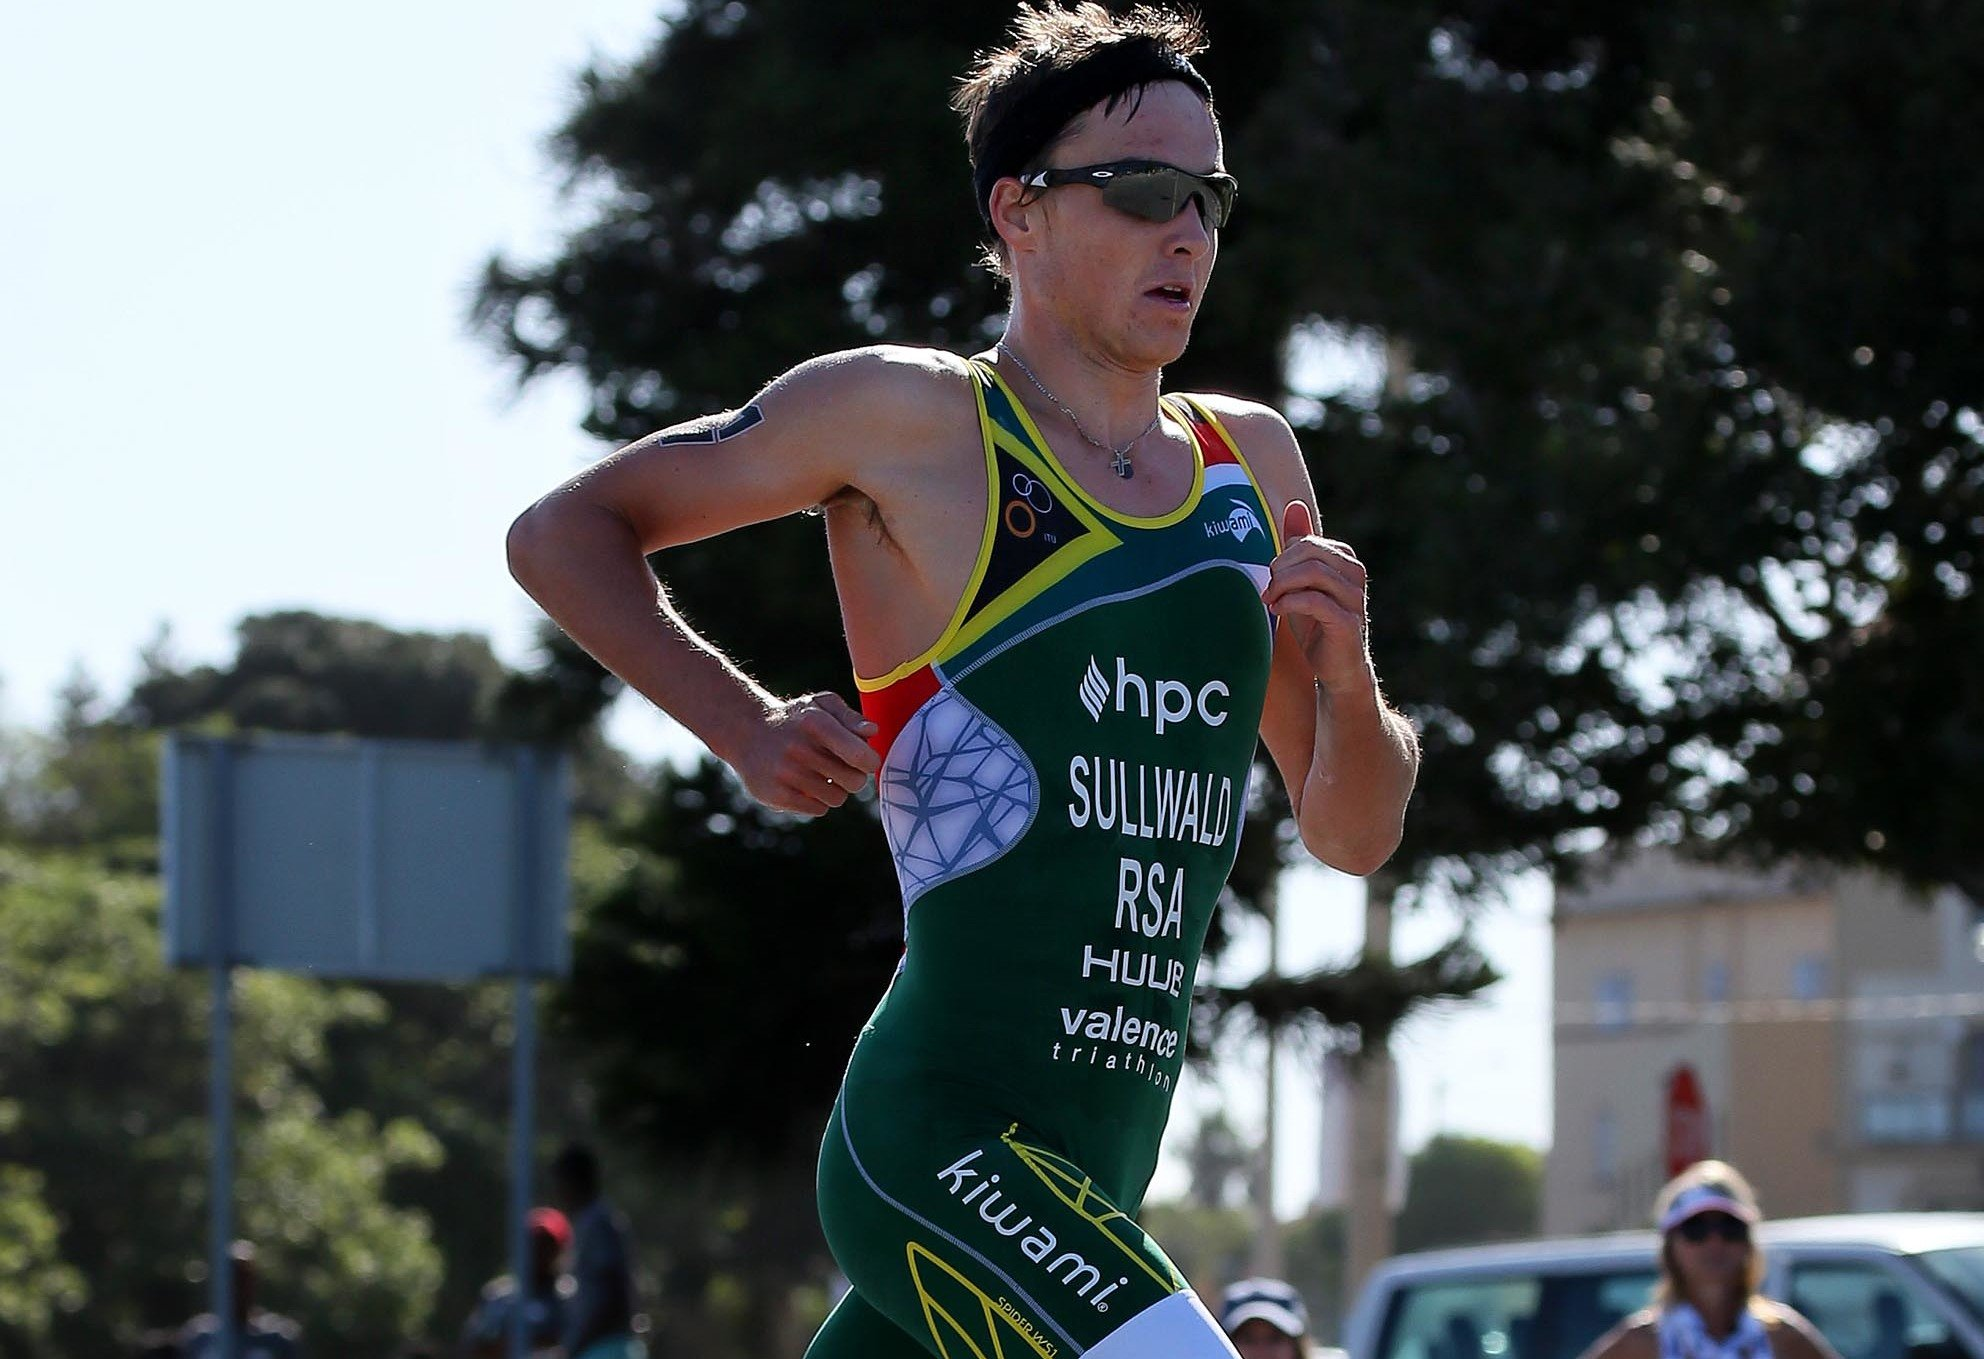 Sullwald in search of Rio qualification spot in Italy